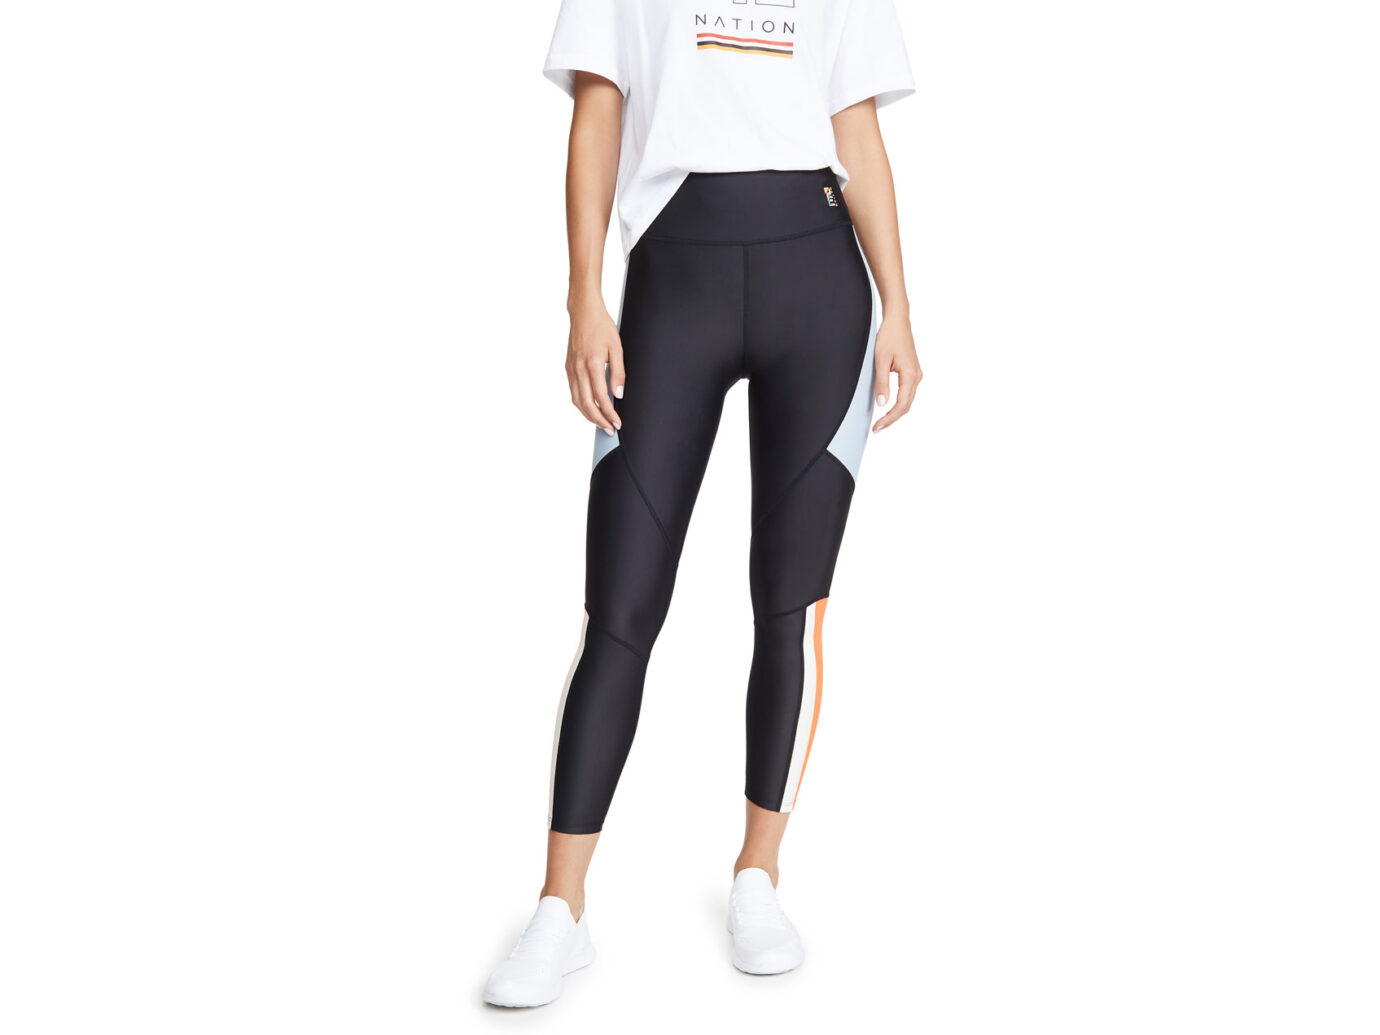 P.E Nation Alpine Leggings